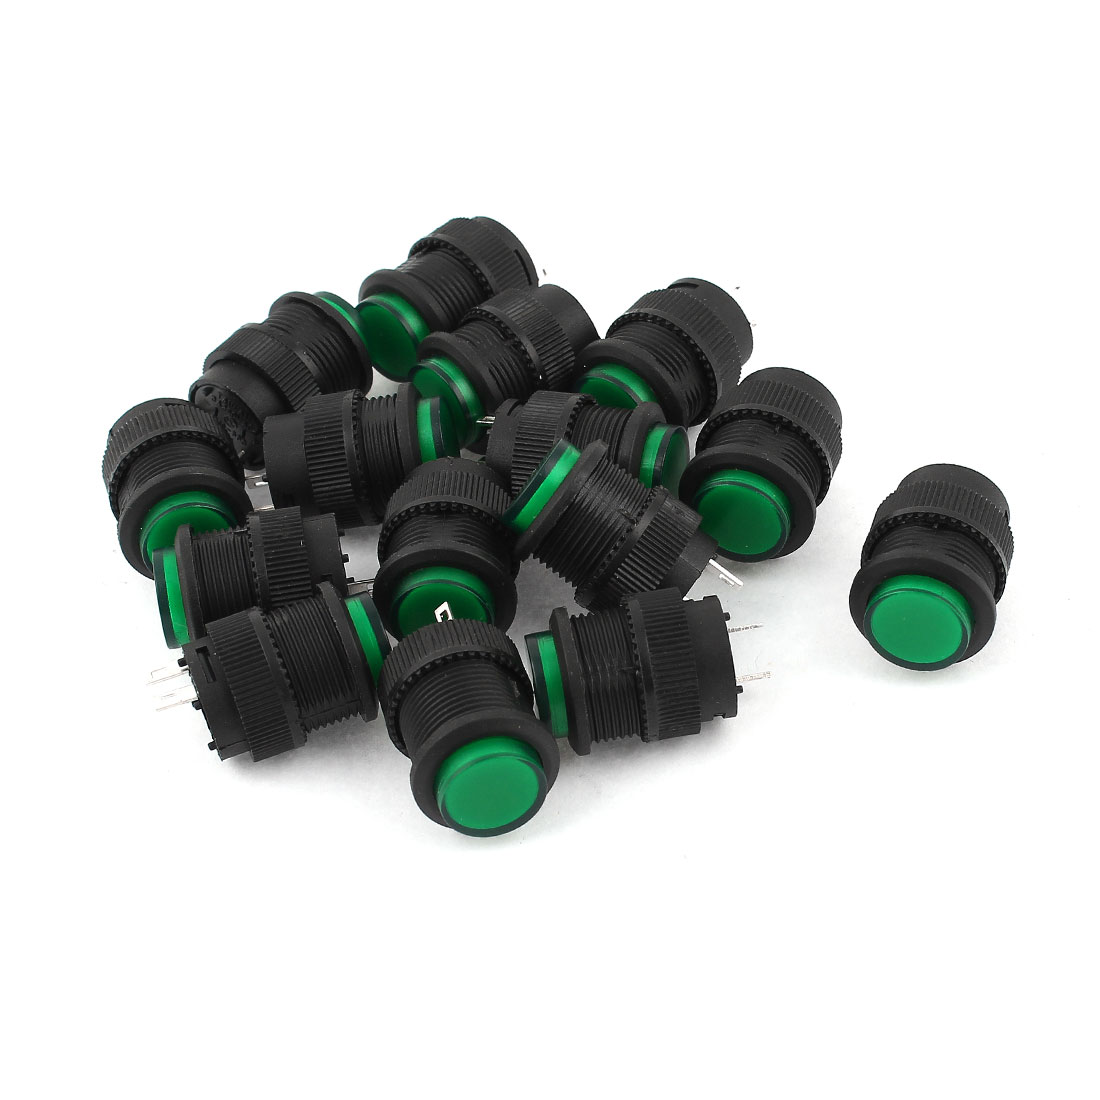 15 Pcs SPST Momentary Green Push Button Power Switch R16-503B AC 250V 3A